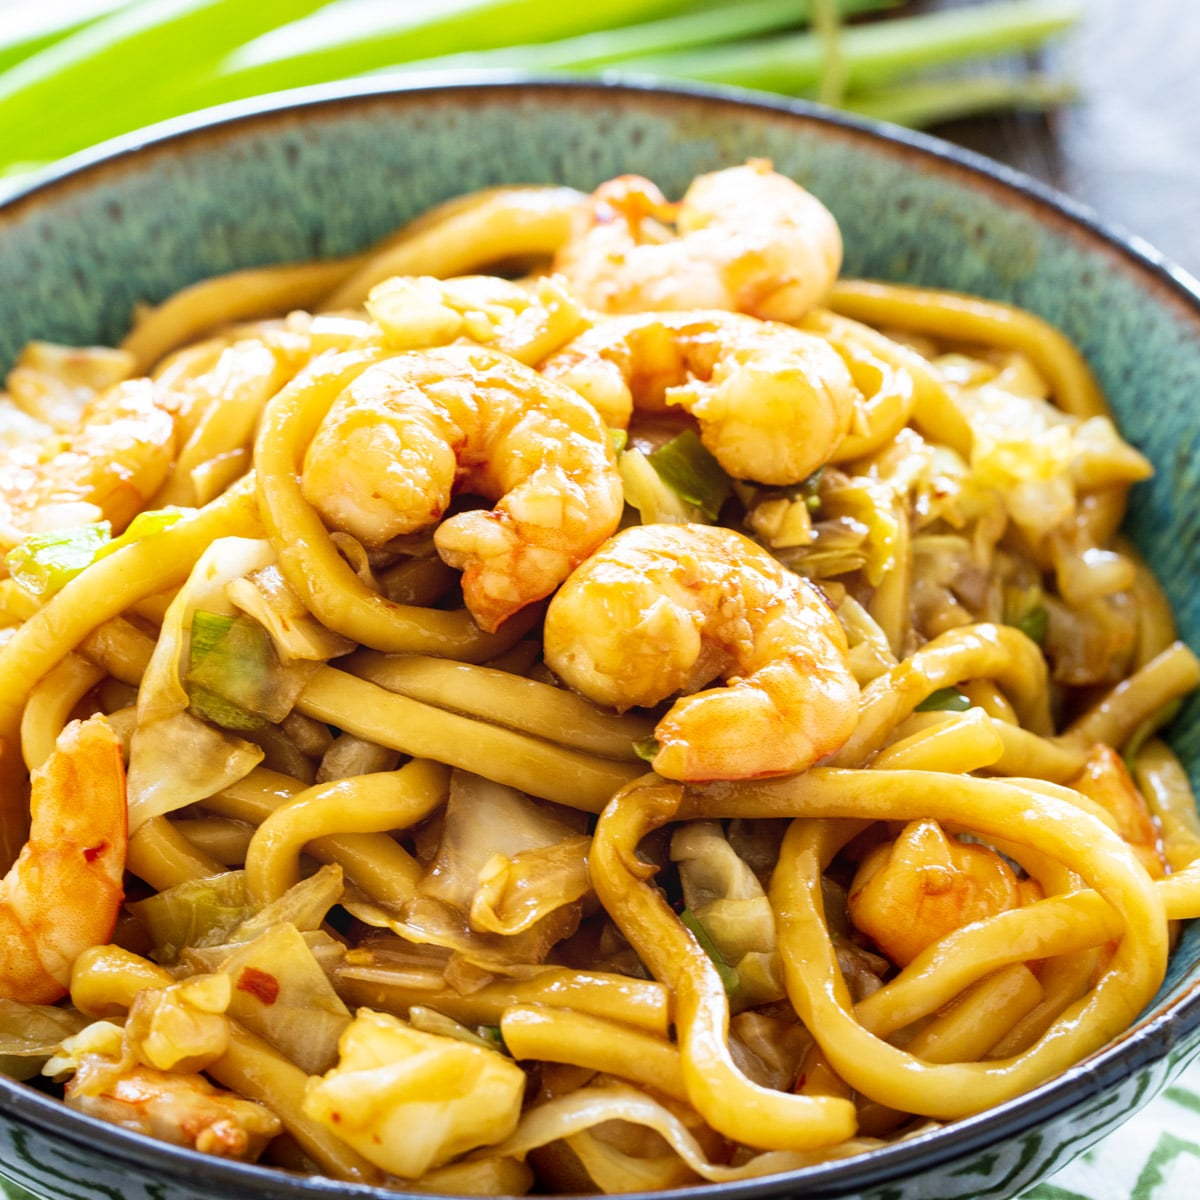 Spicy Shrimp Udon in a bowl.